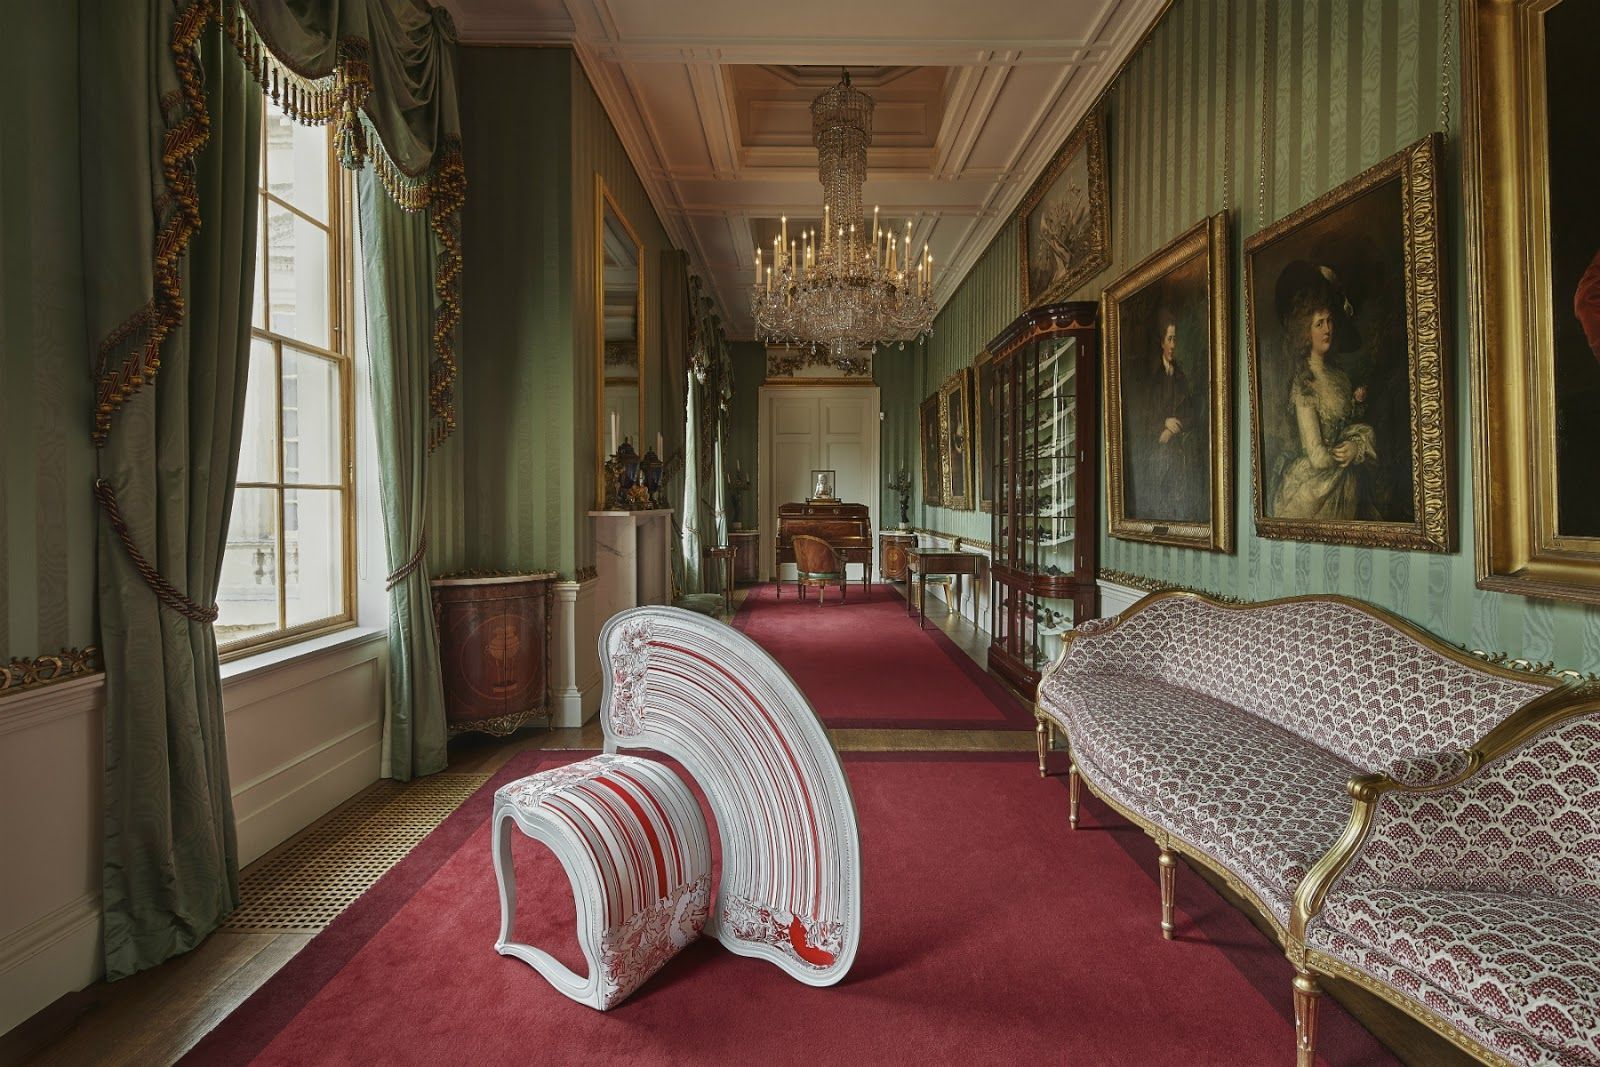 exposicion_de_muebles_make_yourself_comfortable_at_chatsworth_747398133_1800x1200